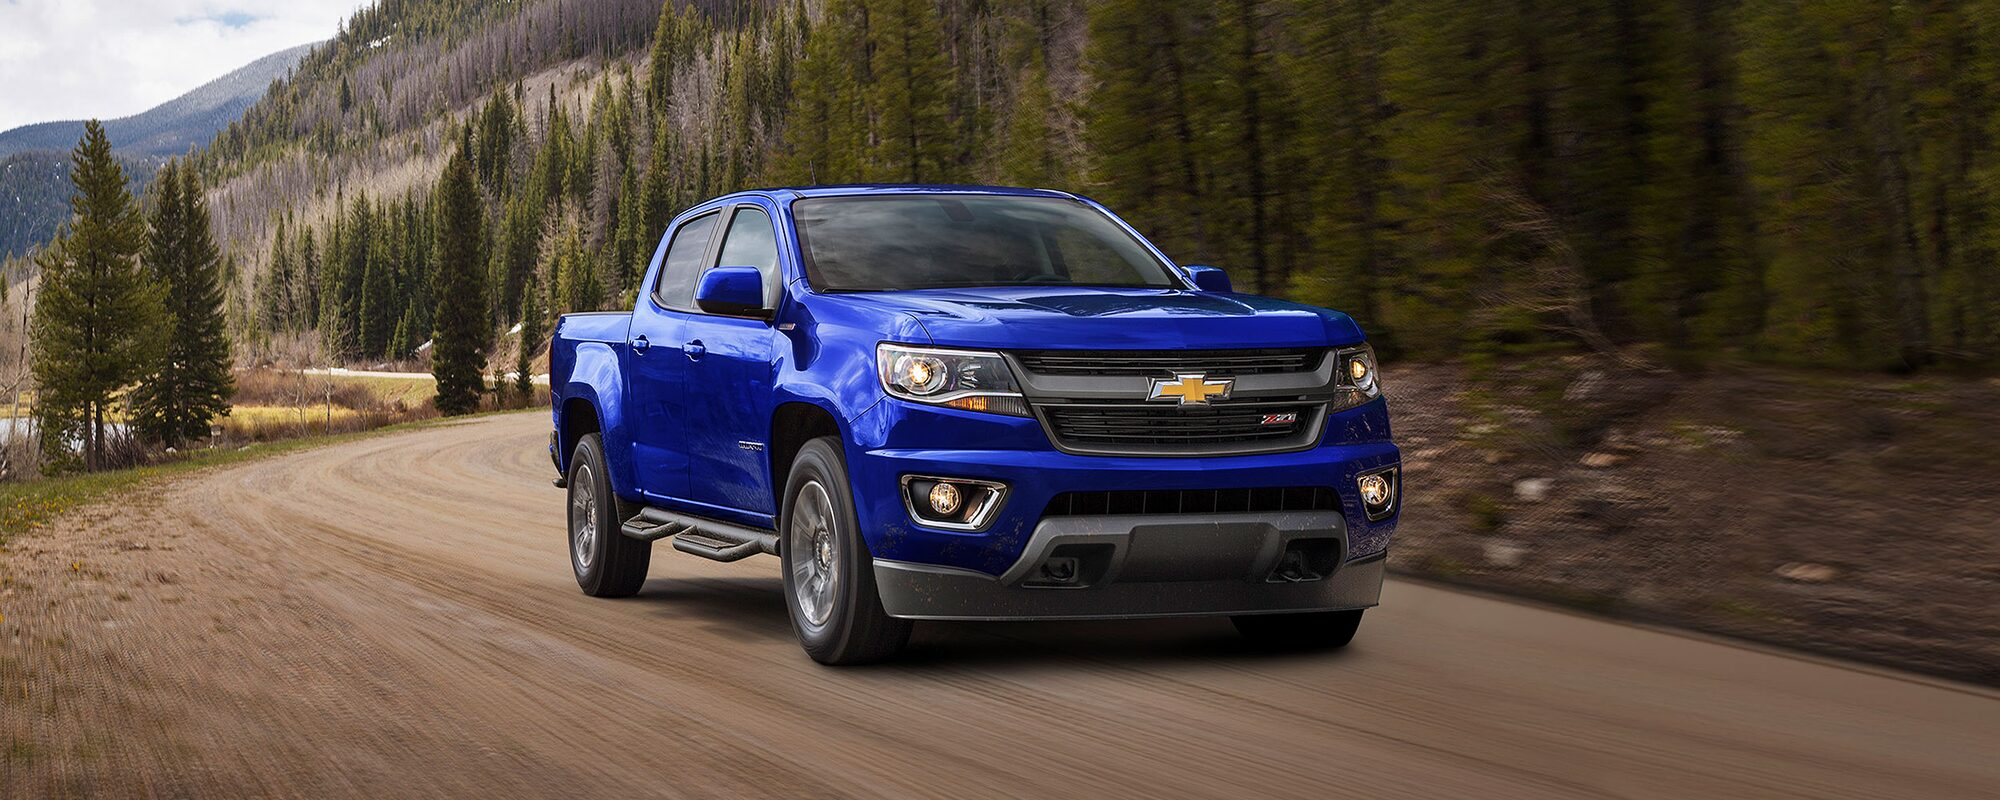 hight resolution of with its available duramax 2 8l turbo diesel 4 cylinder engine the award winning colorado offers best in class highway fuel economy with an epa estimated 30